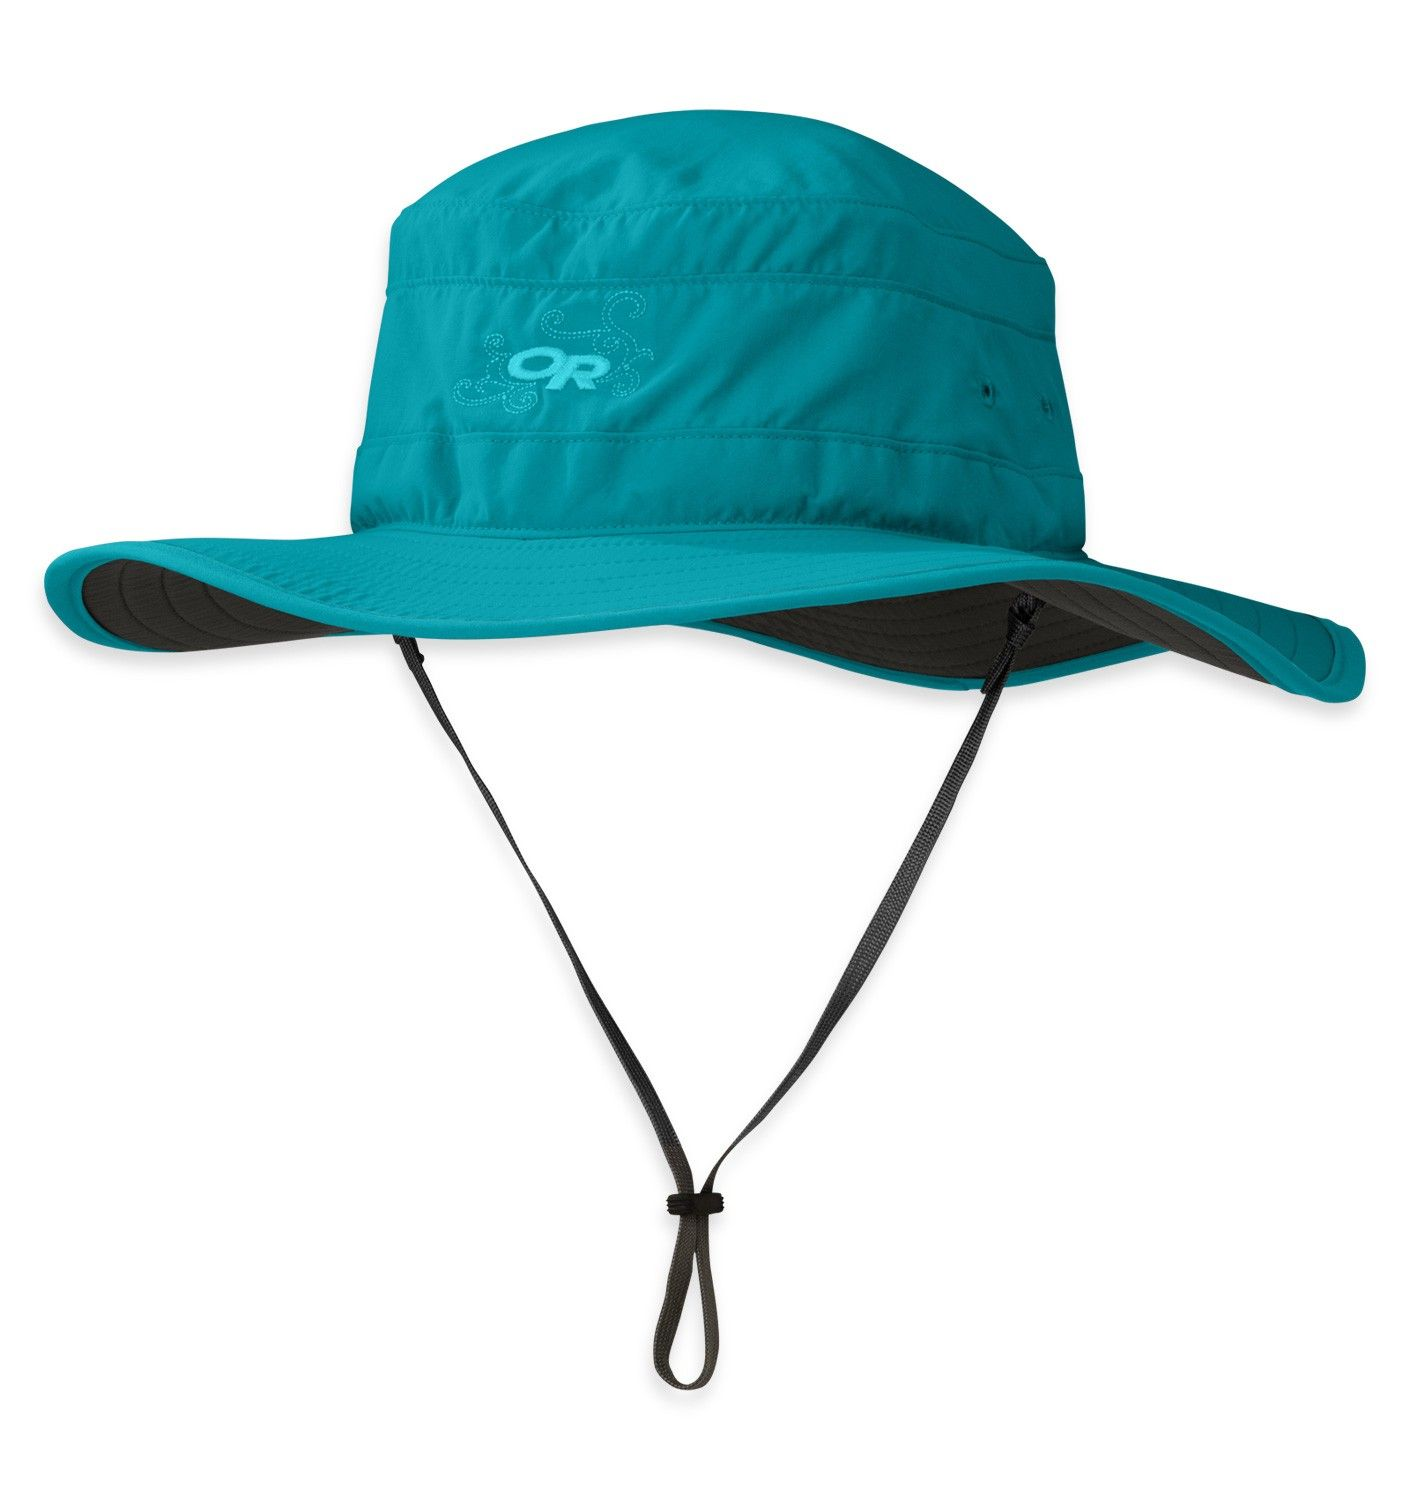 $37.00 - Women's Solar Roller Hat | Outdoor Research | Designed By Adventure | Outdoor Clothing & Gear - May 10, 2016